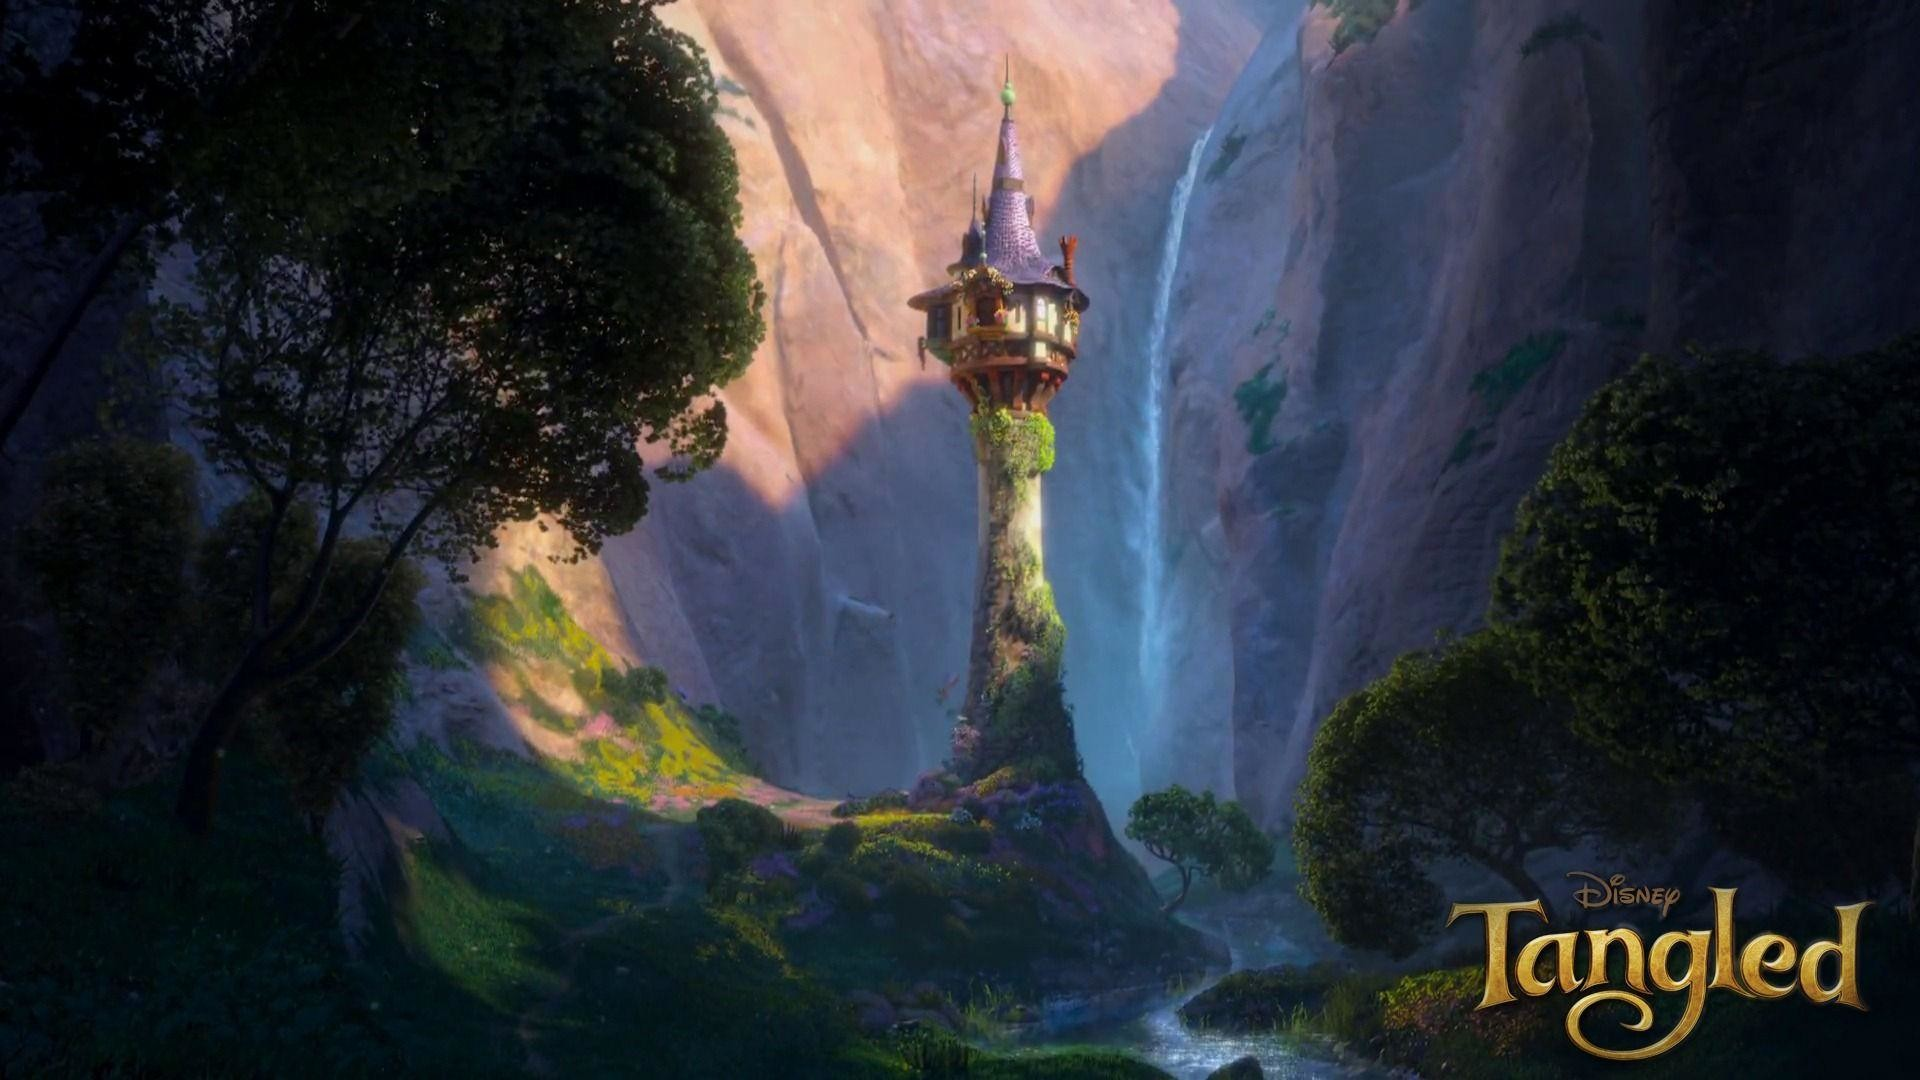 wallpaper.wiki-Disney-Tangled-Background-PIC-WPD005681